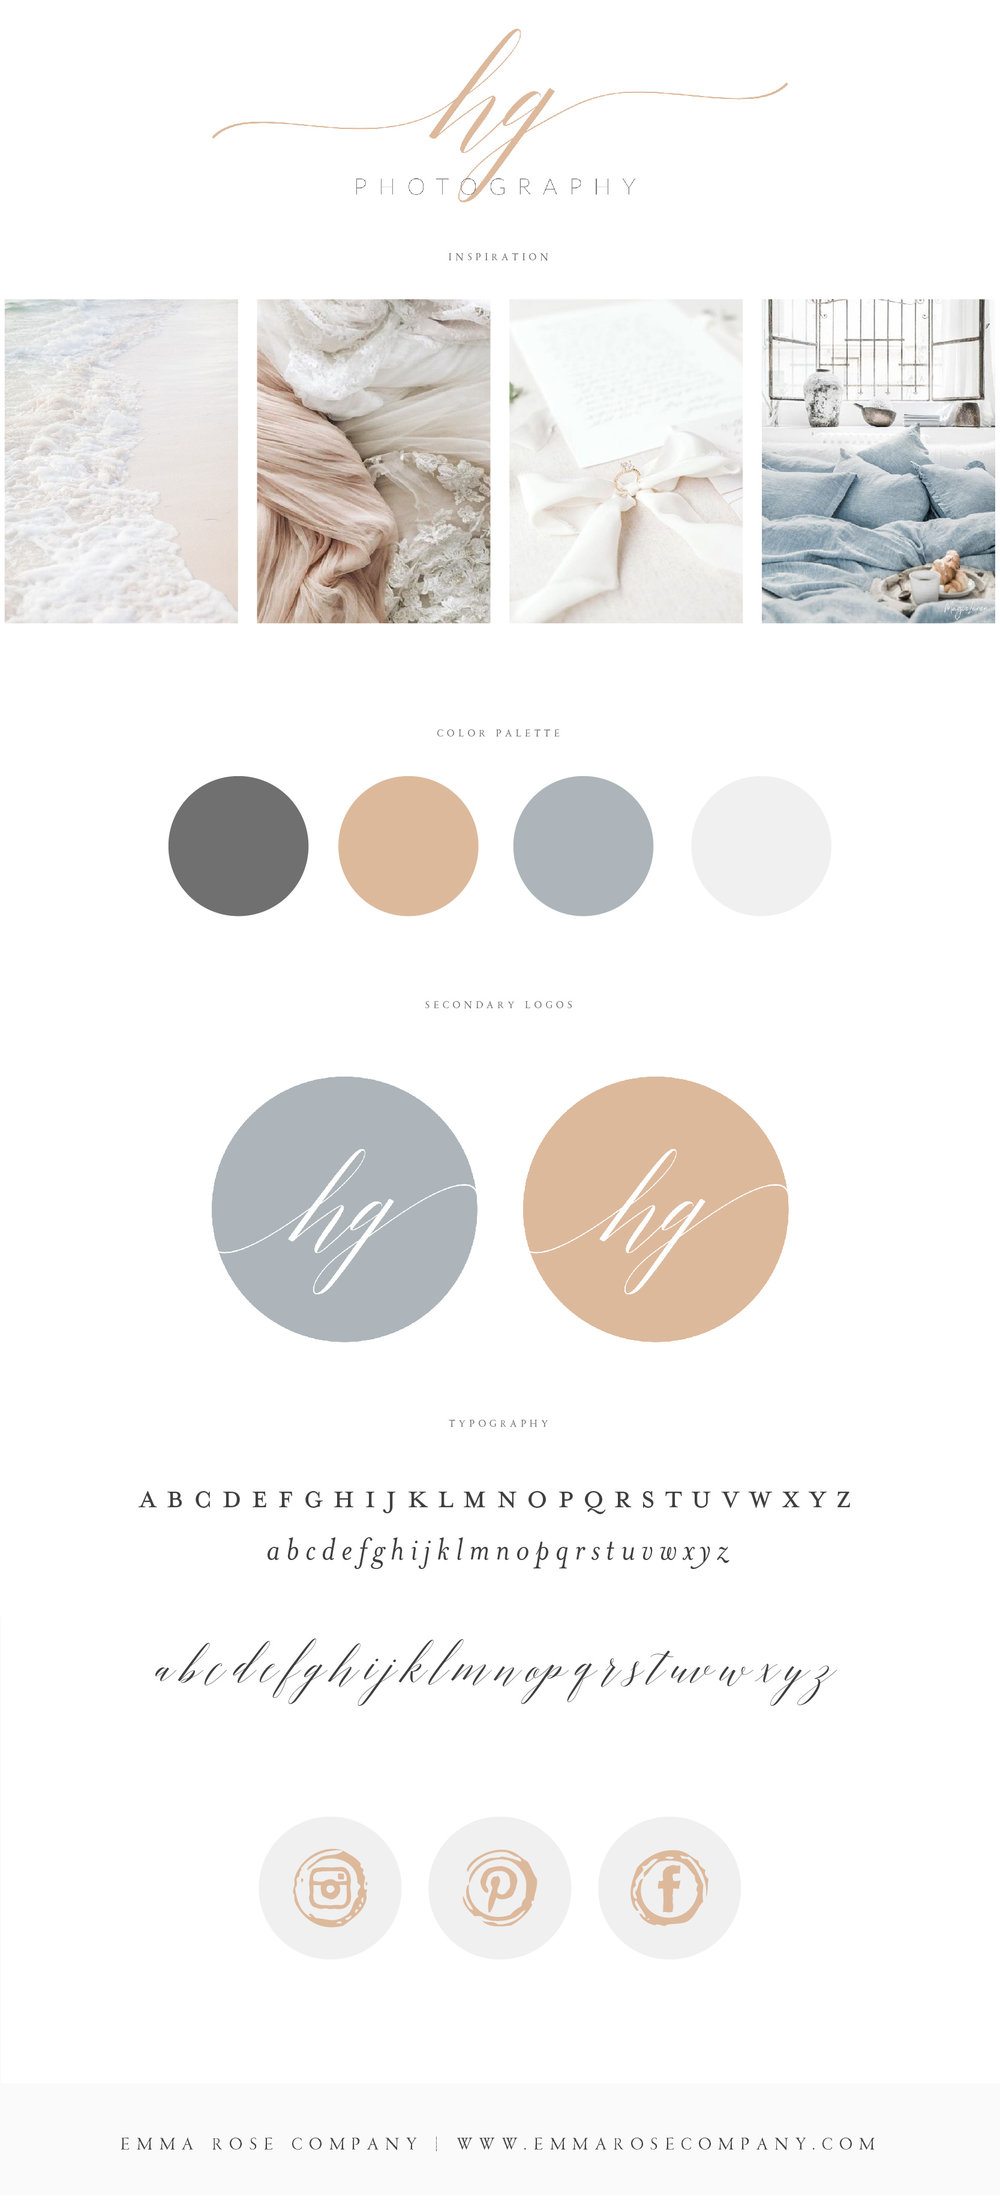 Project keywords for the custom Squarespace website design for Helengrey Photography were Minimalist, Bright, Sophisticated, Connection, Authentic, and Neutral.  She worked with Emma Rose Company who is a Squarespace website designer for photographers looking to stand out online, book their dream clients, and have a website that is gorgeous and easy to use.  #squarespace #webdesign #emmarosecompany